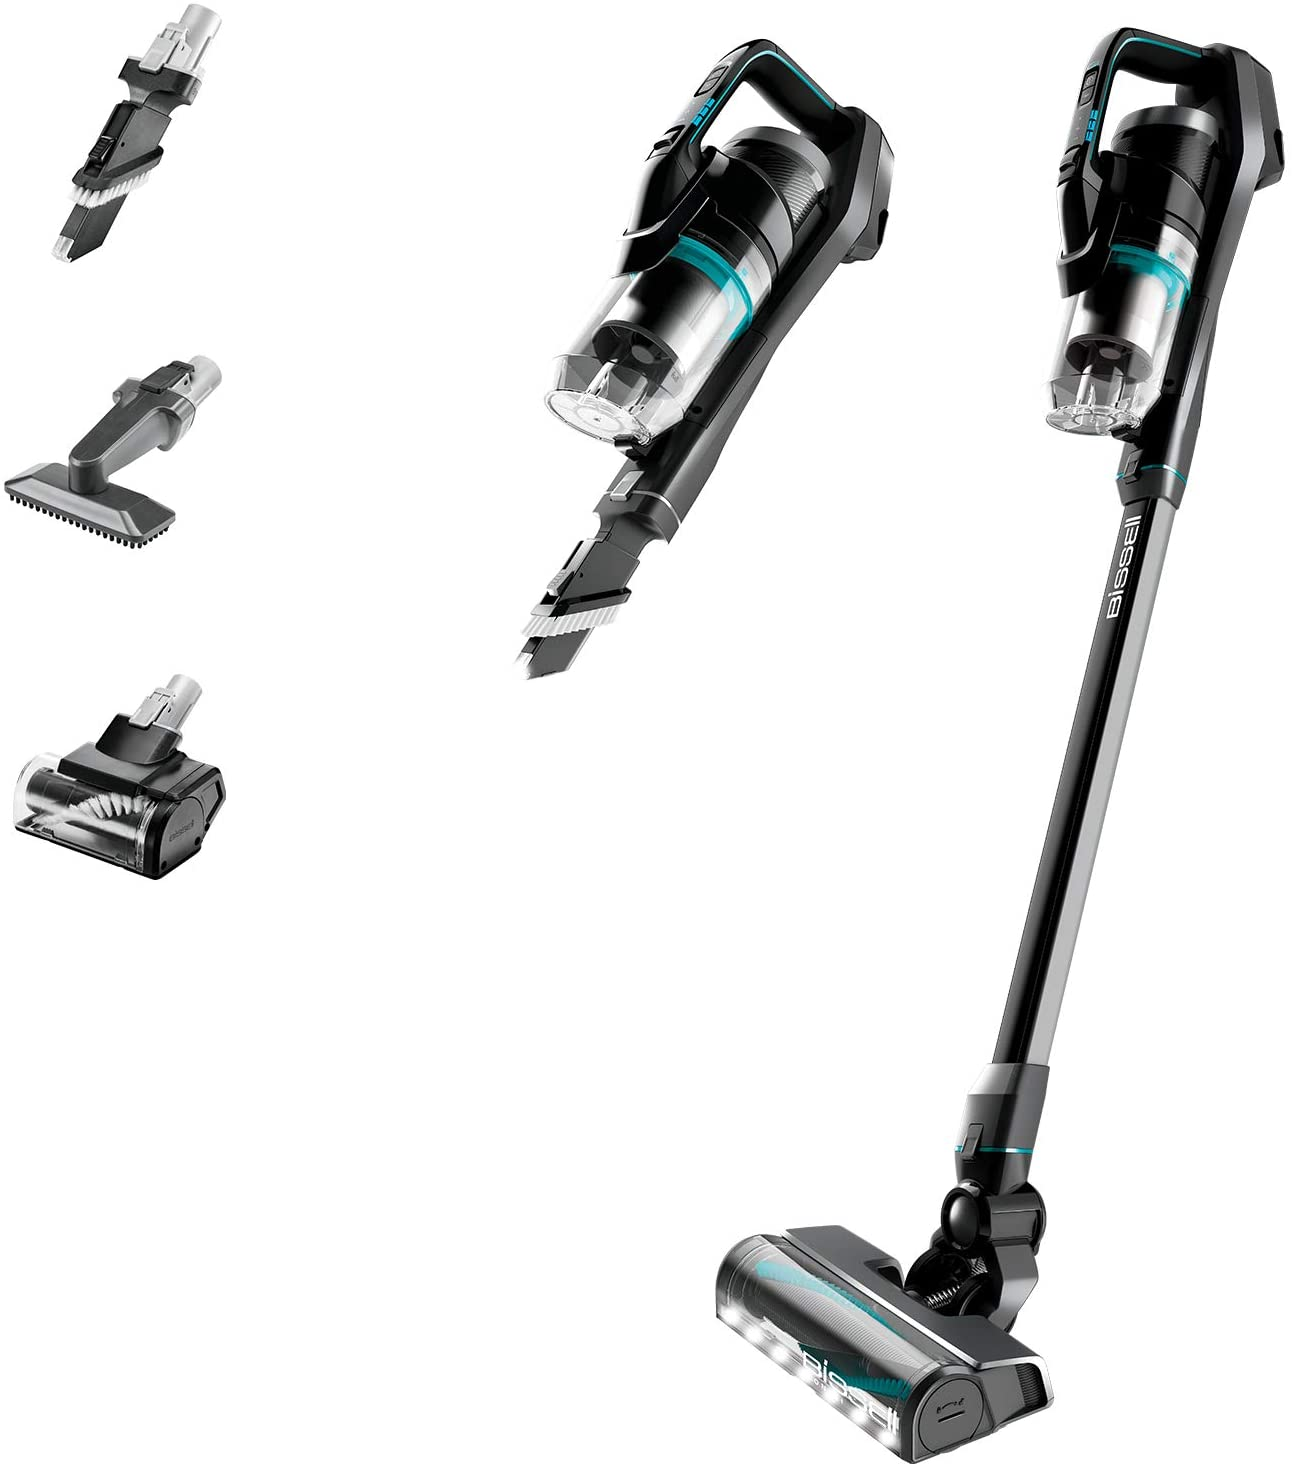 BISSELL Homecare 2602E, ICON Pet 25V Cordless Vacuum, Black/Electric Blue